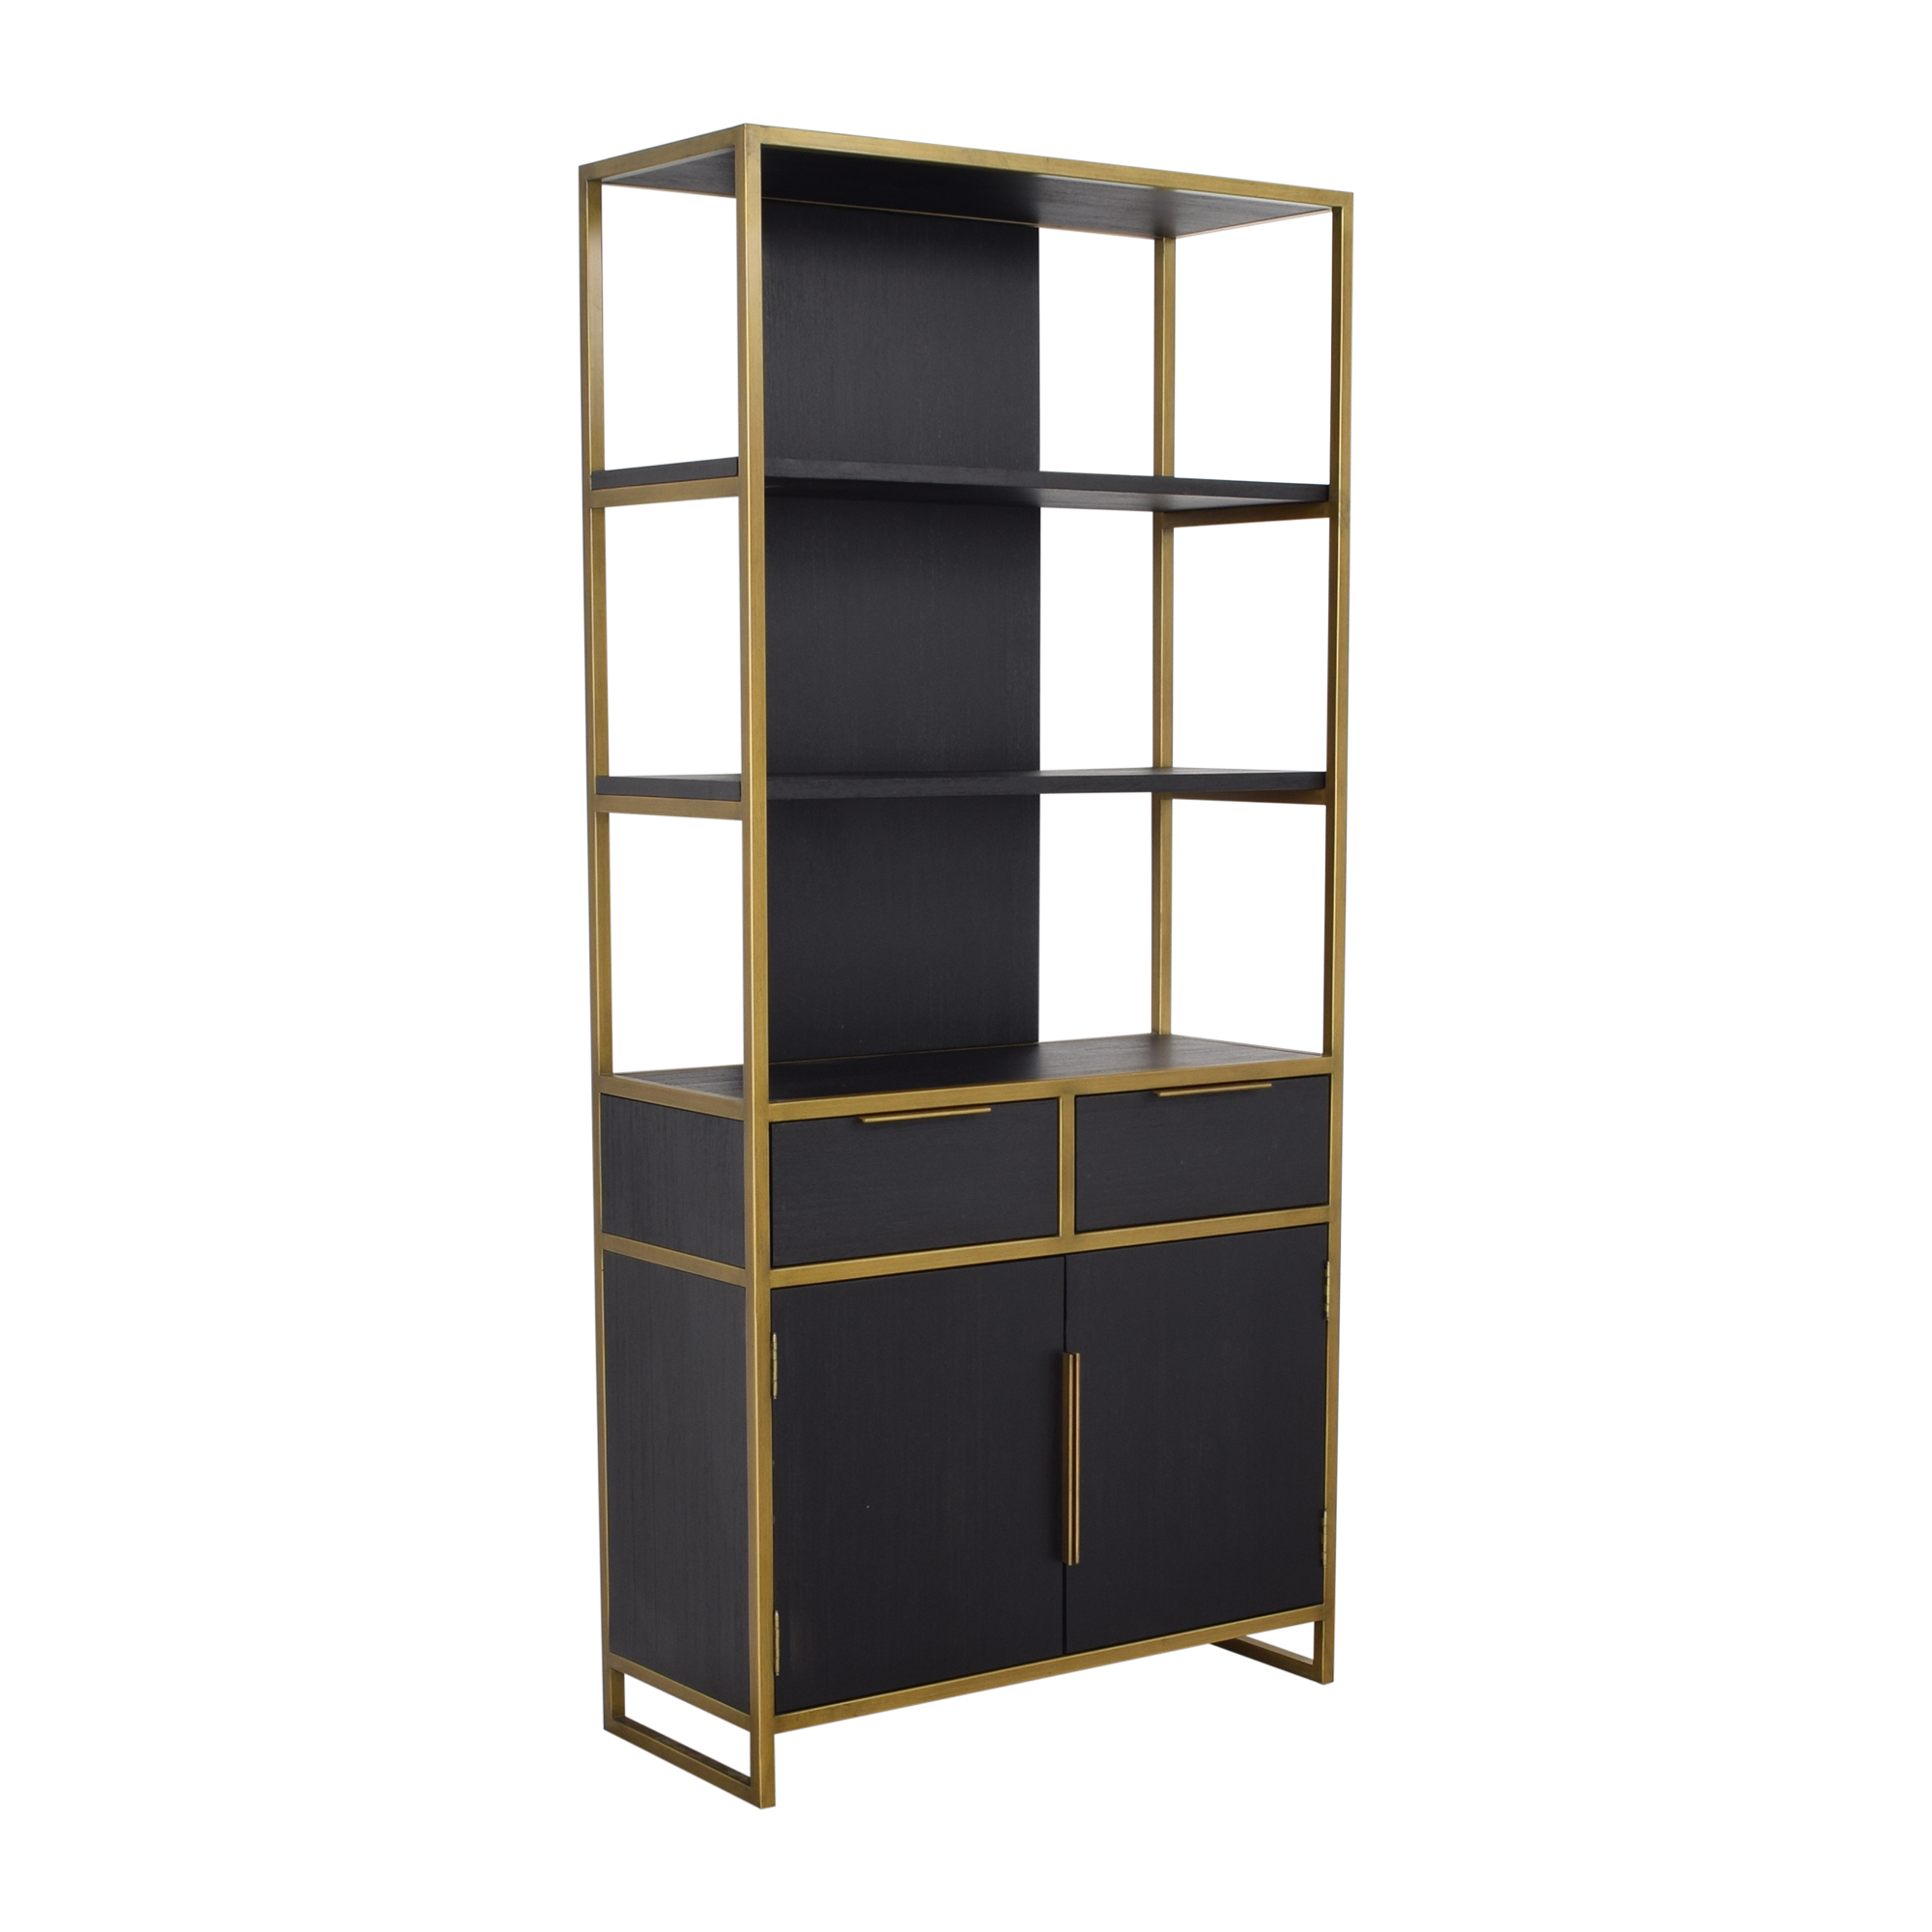 buy Crate & Barrel Oxford Wide Storage Bookcase Crate & Barrel Bookcases & Shelving